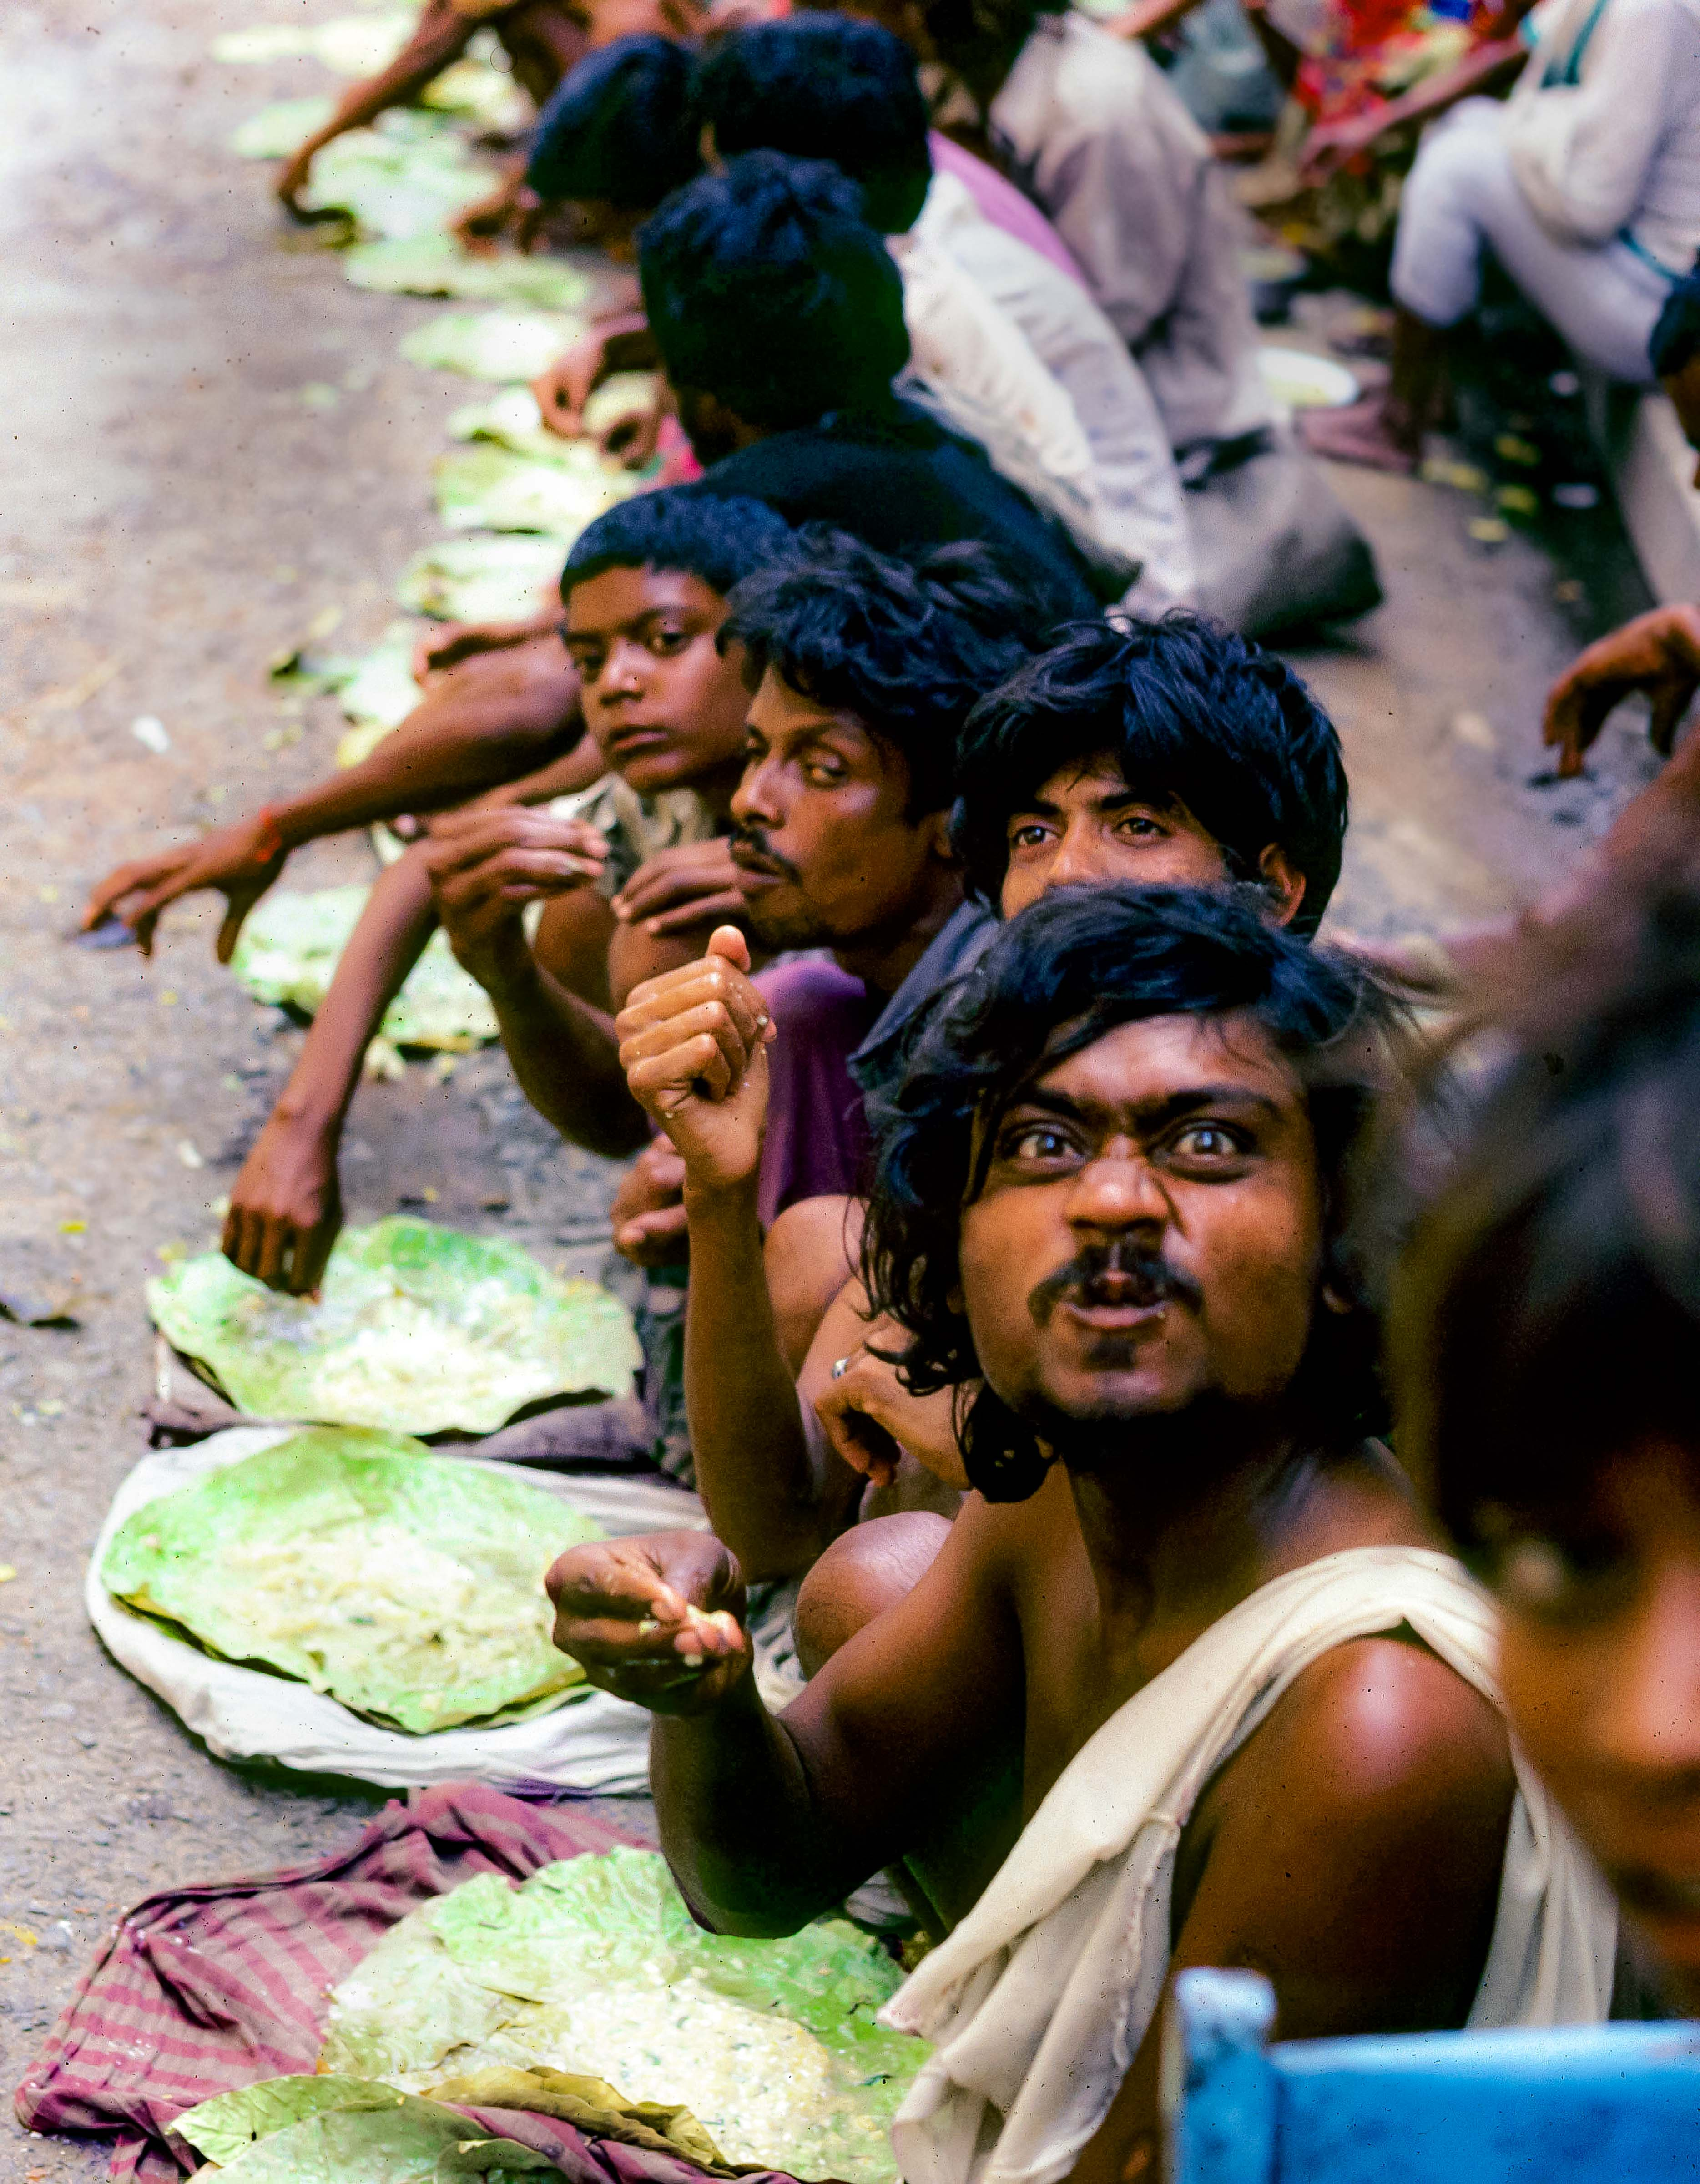 India, Calcutta, Food Line, 1984